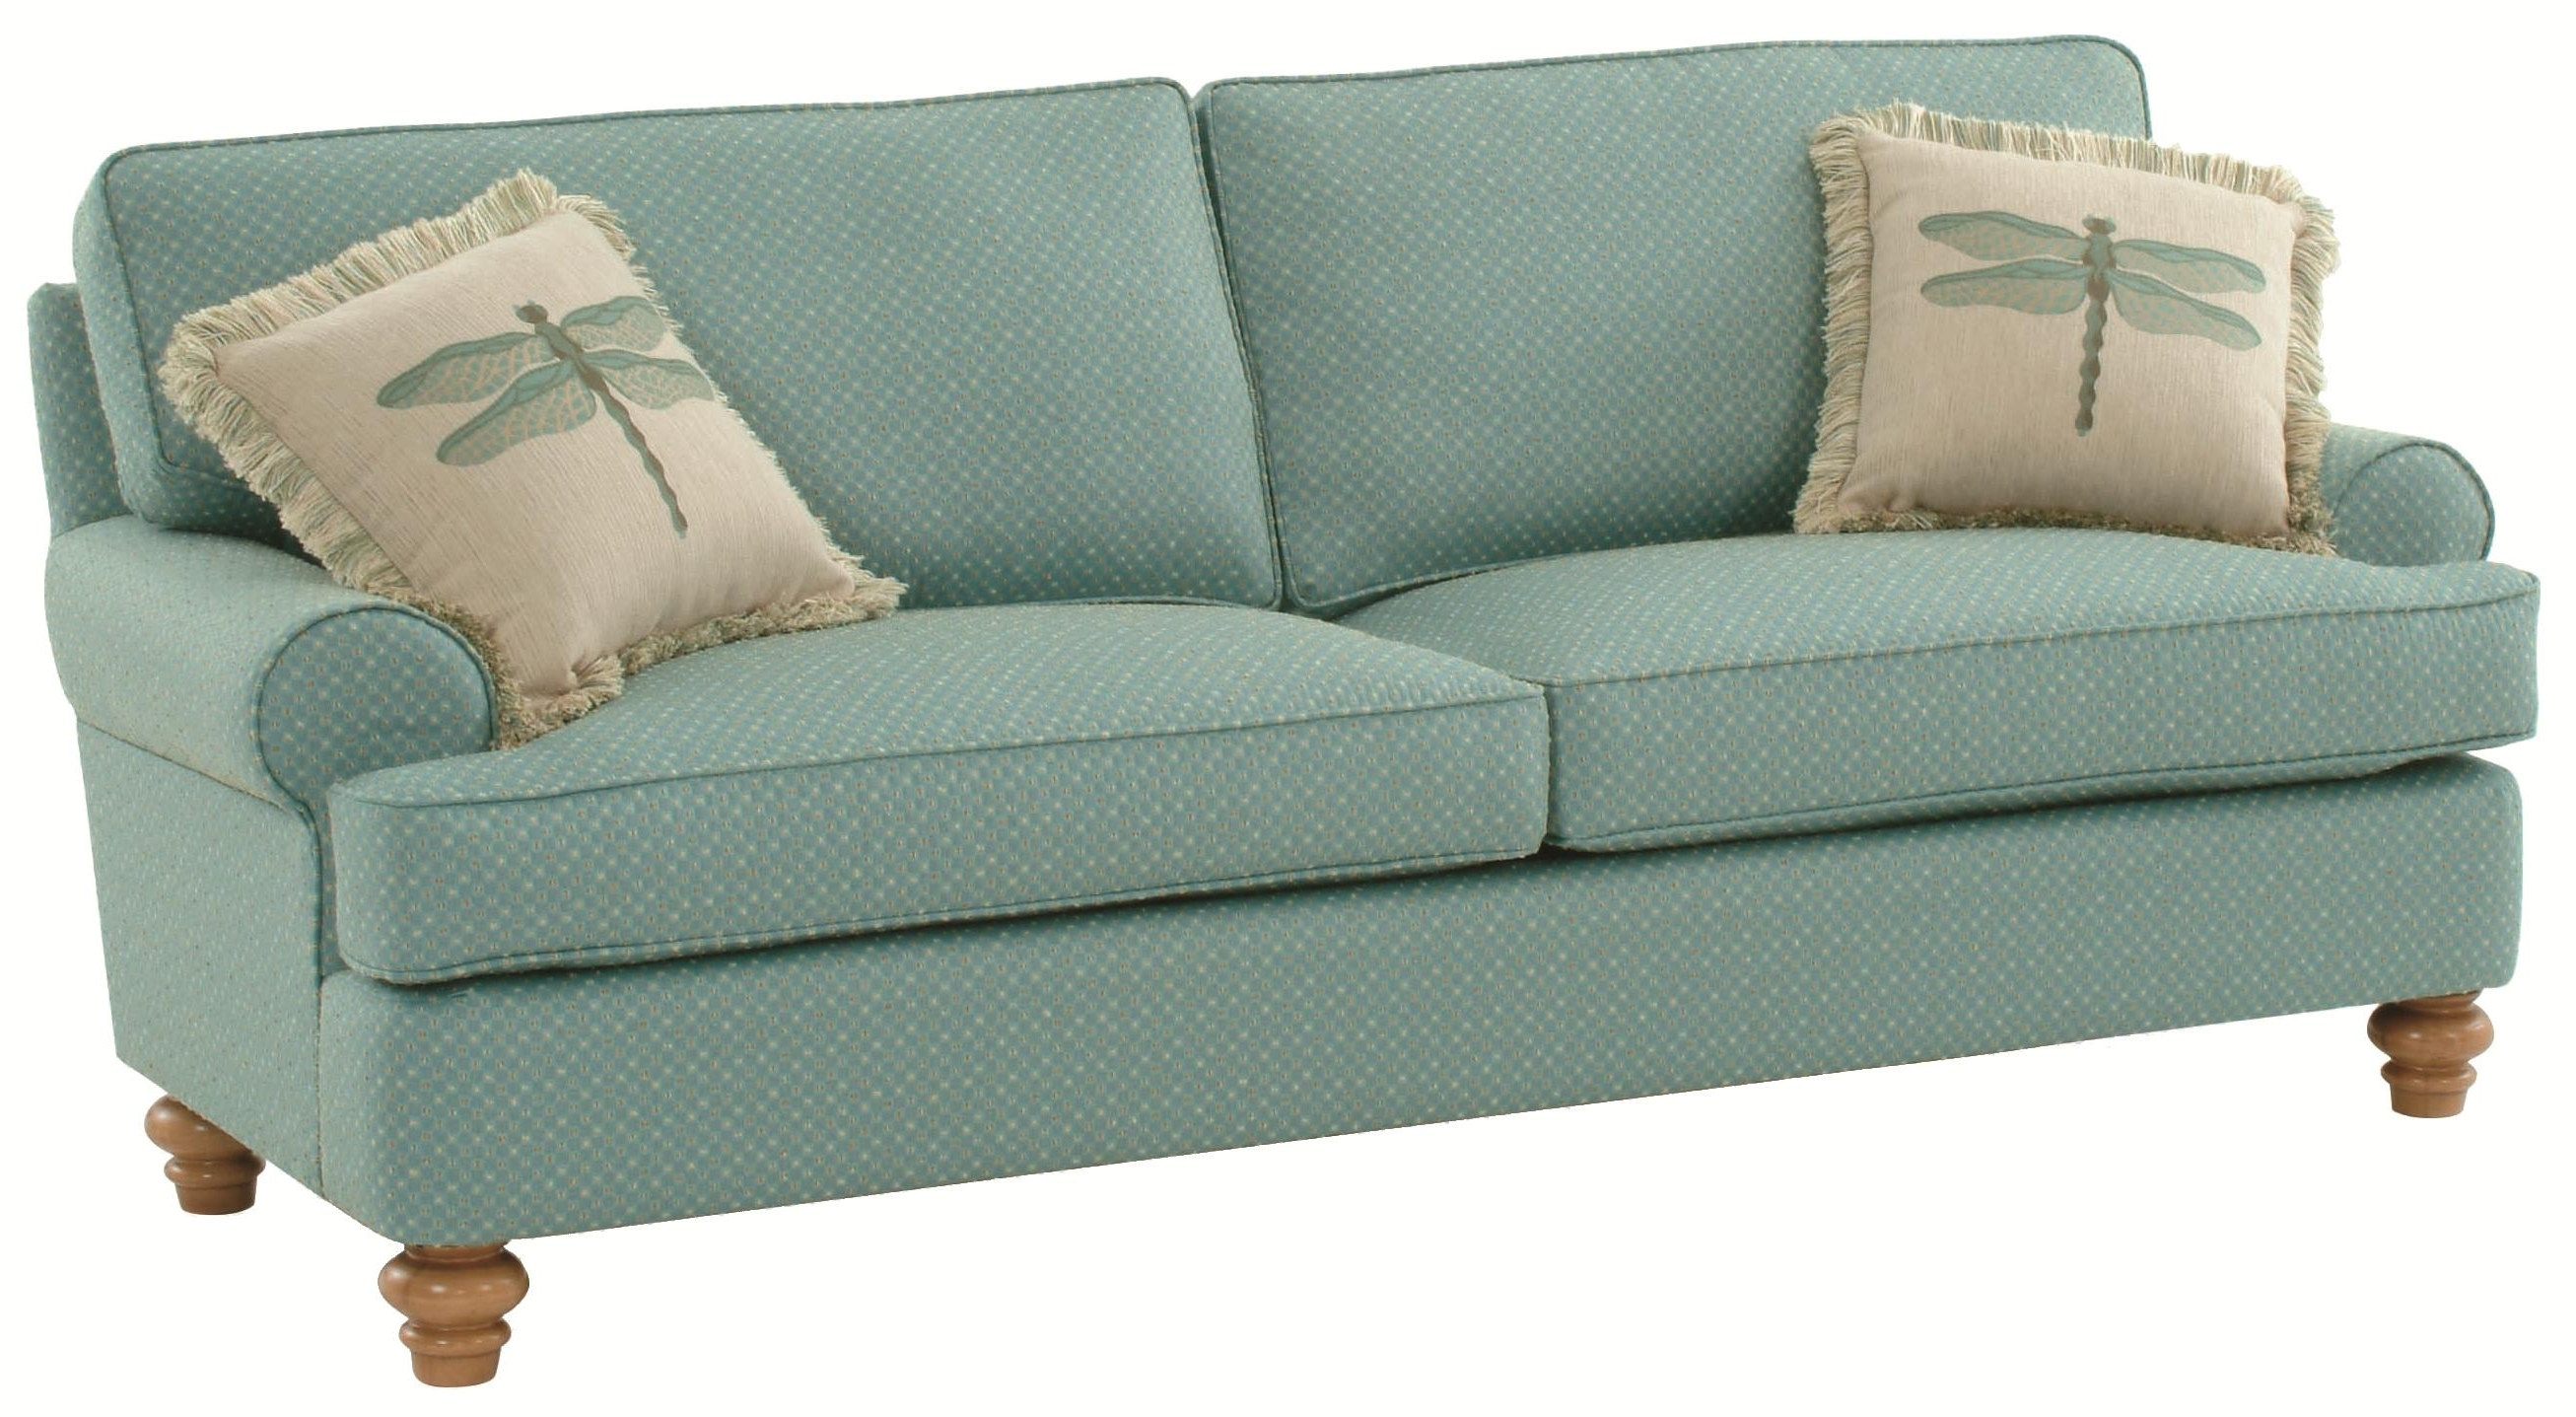 Well Liked Braxton Sofas Pertaining To Braxton Culler 773 Lowell Stationary Cottage Styled Sofa – Ahfa (View 3 of 20)